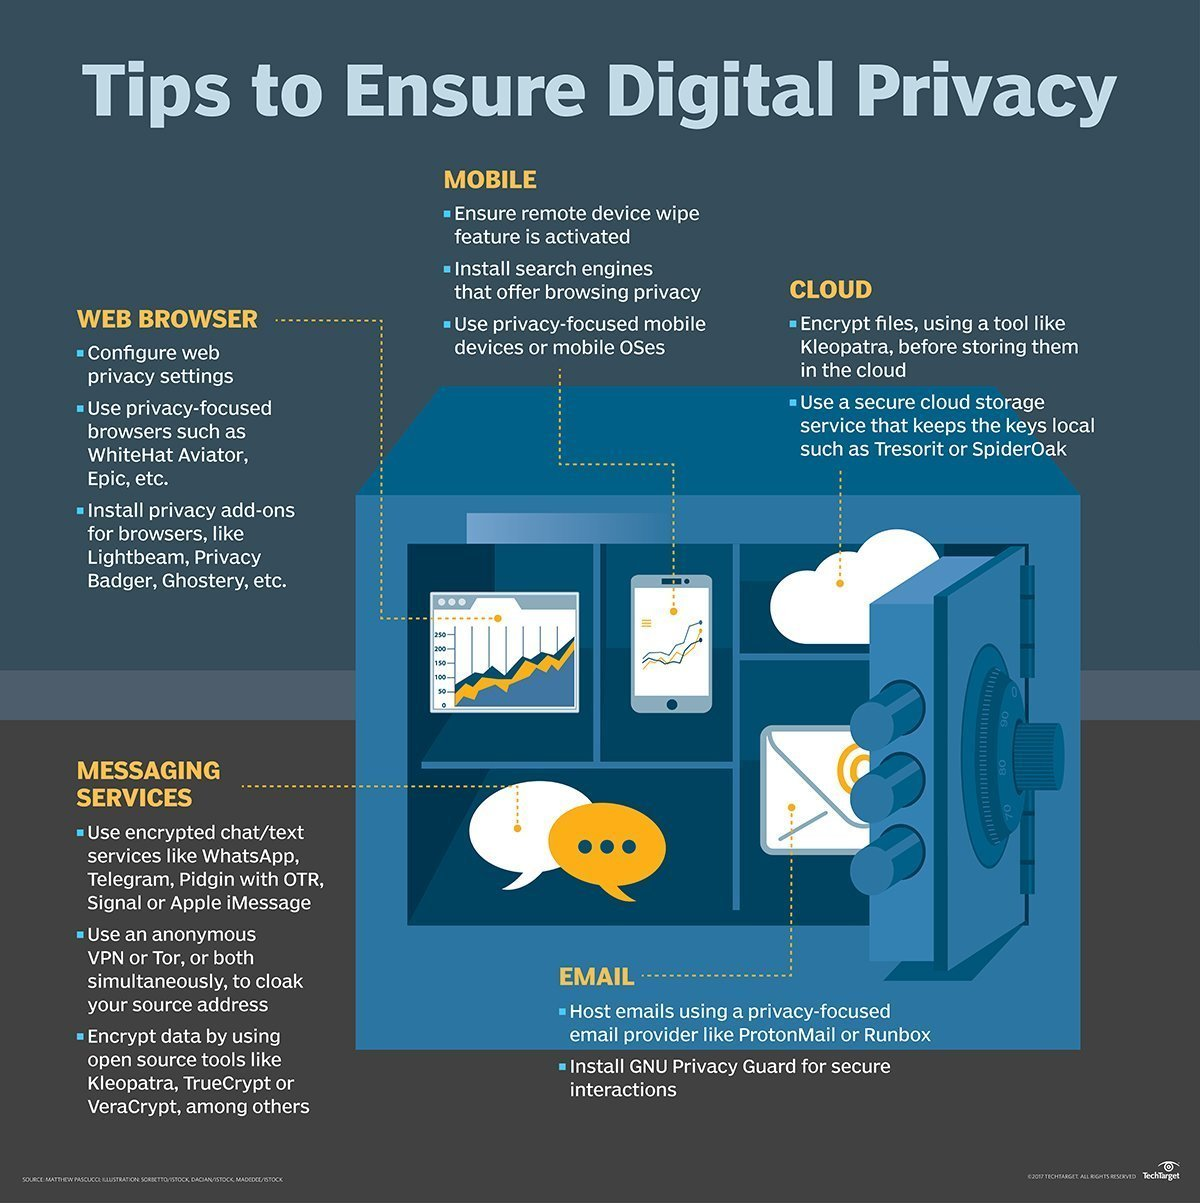 How to maintain digital privacy in an evolving world